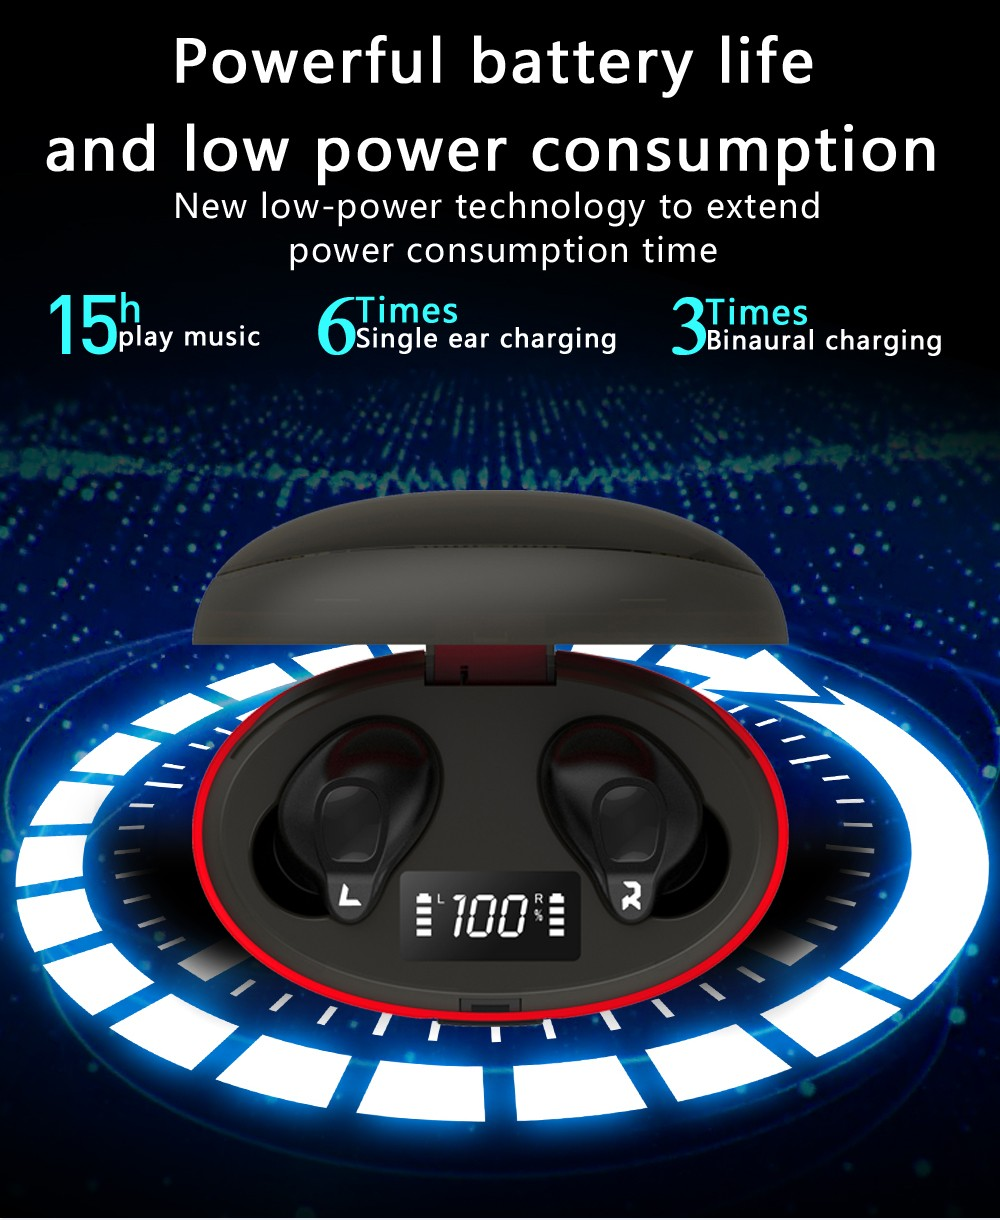 Gocomma A1 TWS Bluetooth Wireless Earbuds HIFI Sound Quality Waterproof Noise-cancelling Headphones With LED Display- Black